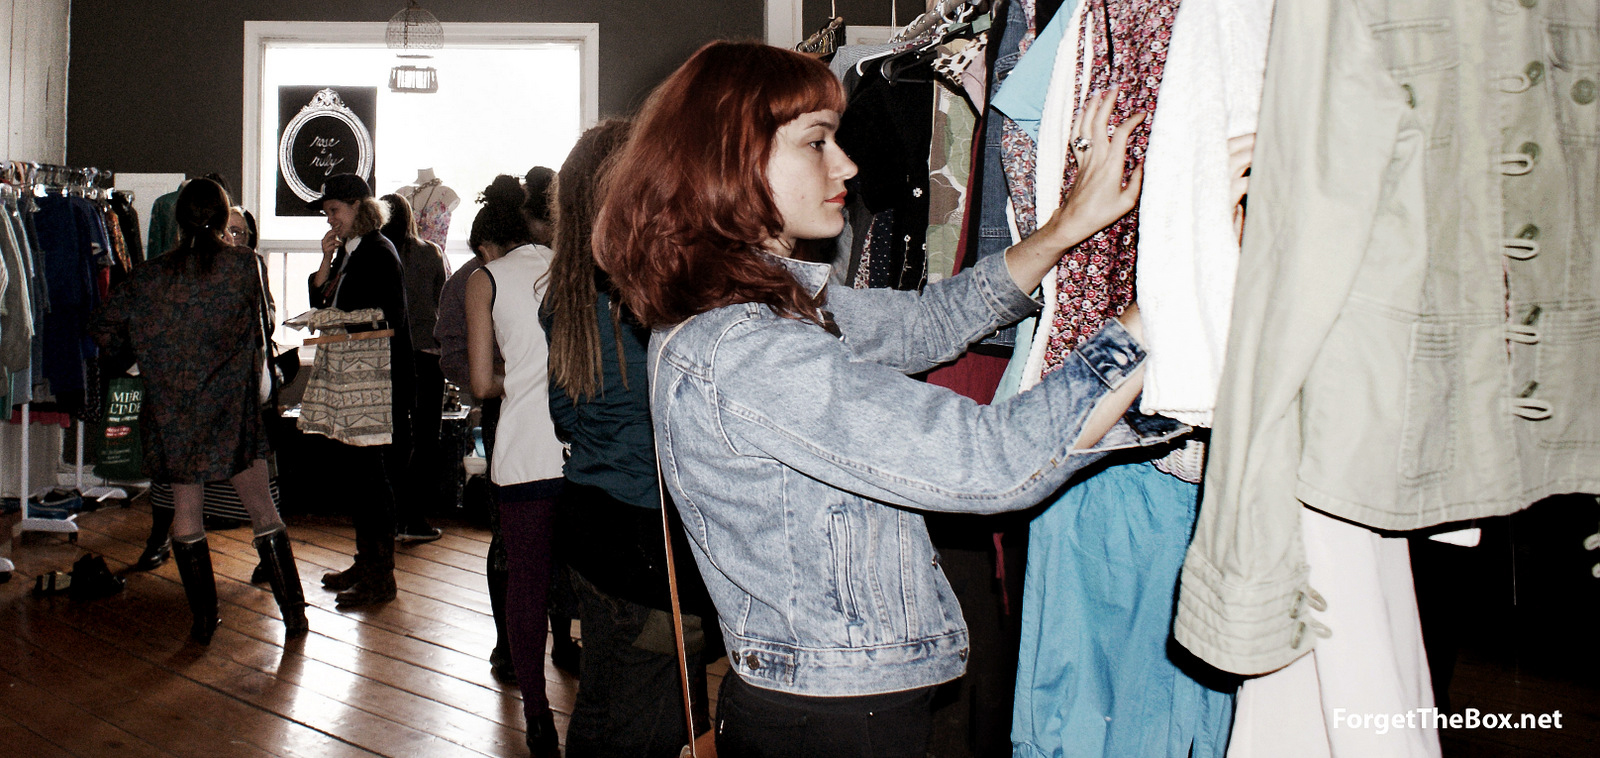 Spring Fling: Clothing Exchange & Sale - Photos by Iana Kazakova